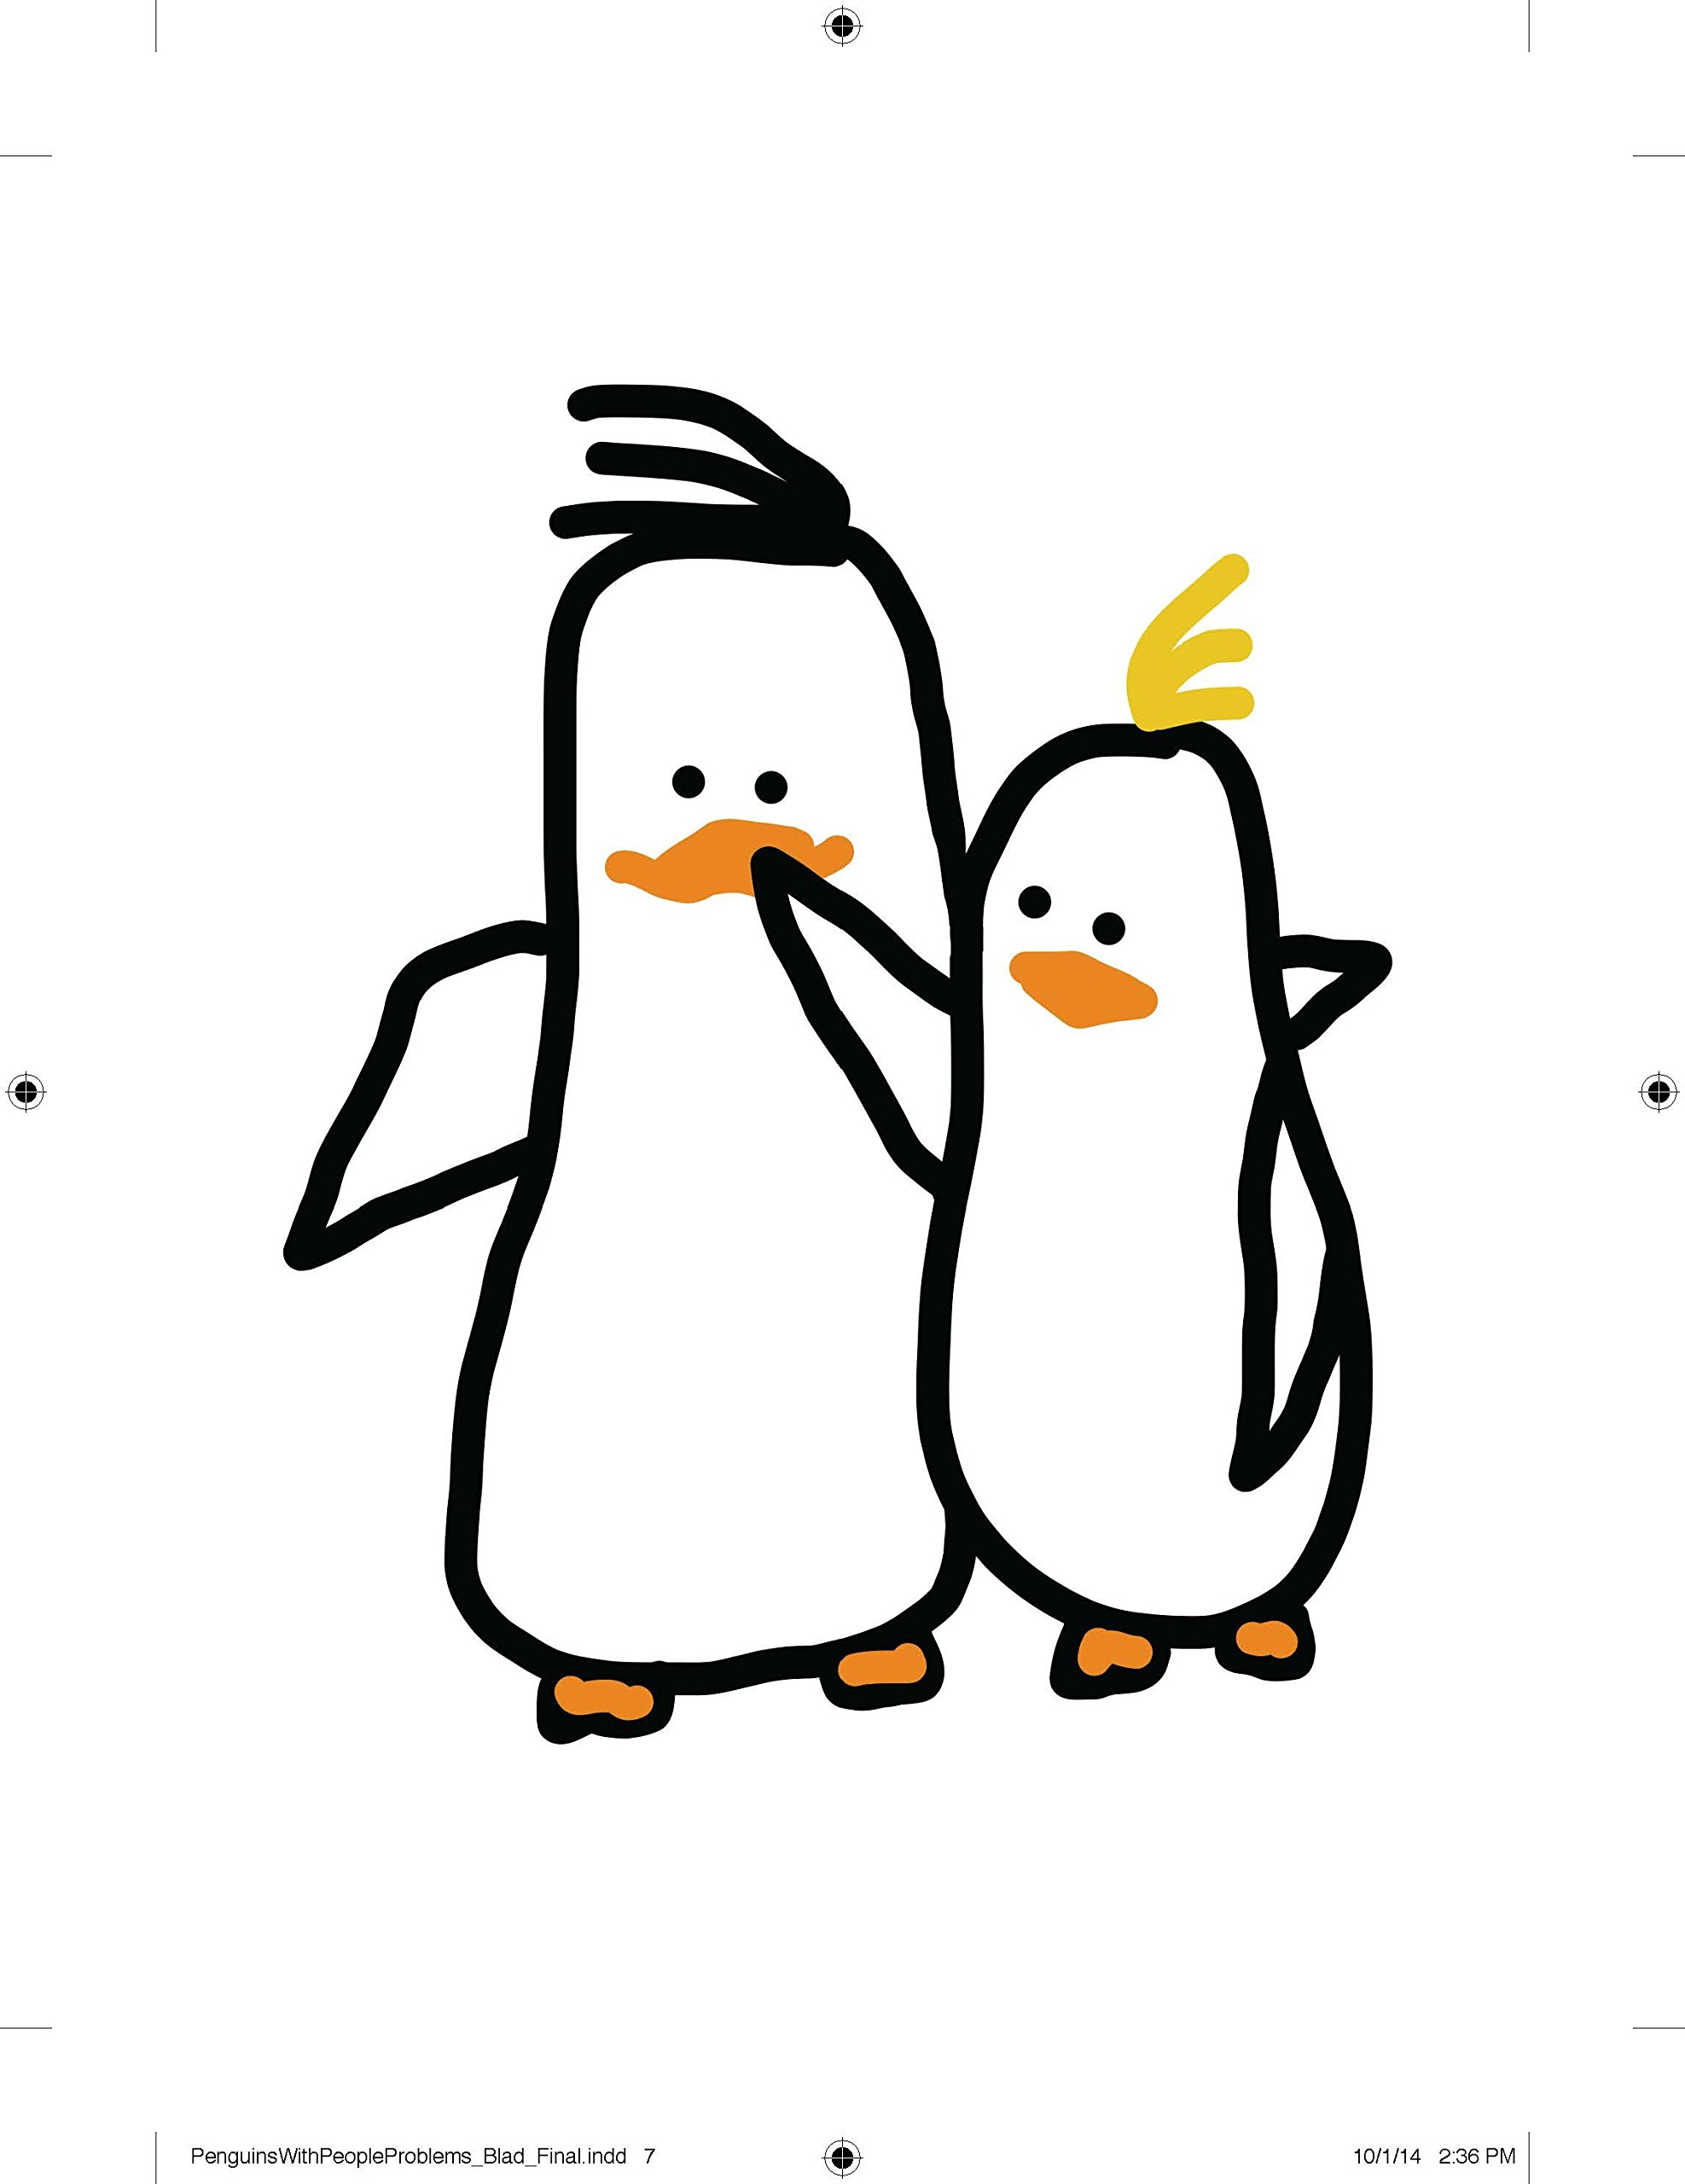 penguins with people problems mary laura philpott 9780399173097